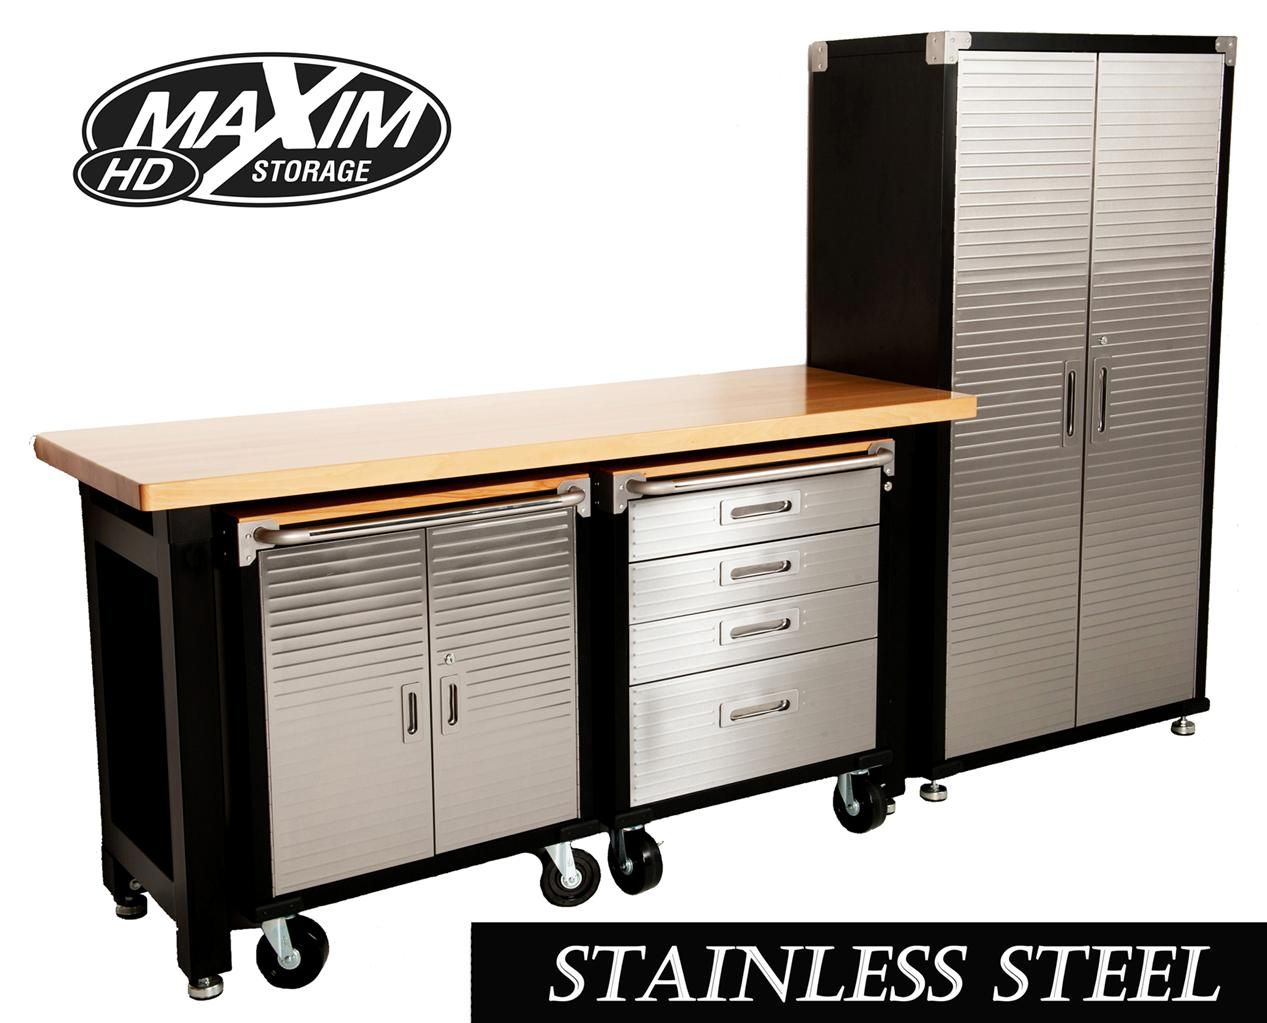 Maxim Hd 4 Piece Standard Garage Storage System Timber